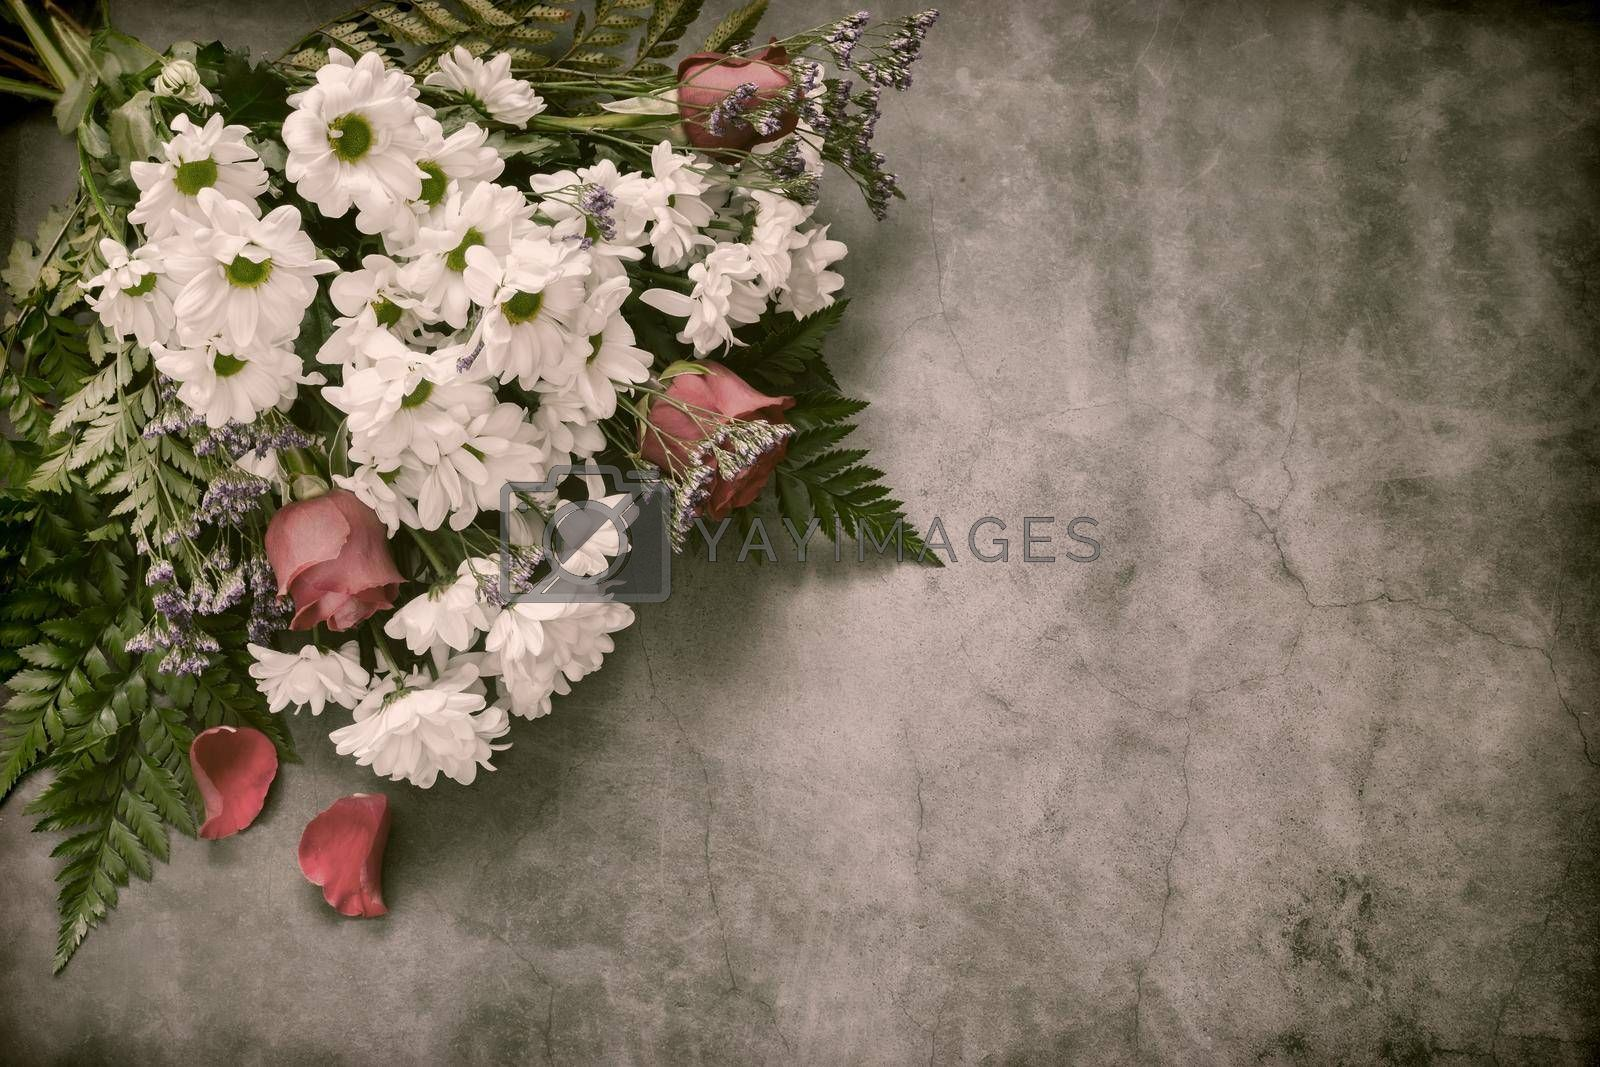 Royalty free image of Bouquet of white chrysanthemums with red roses by georgina198